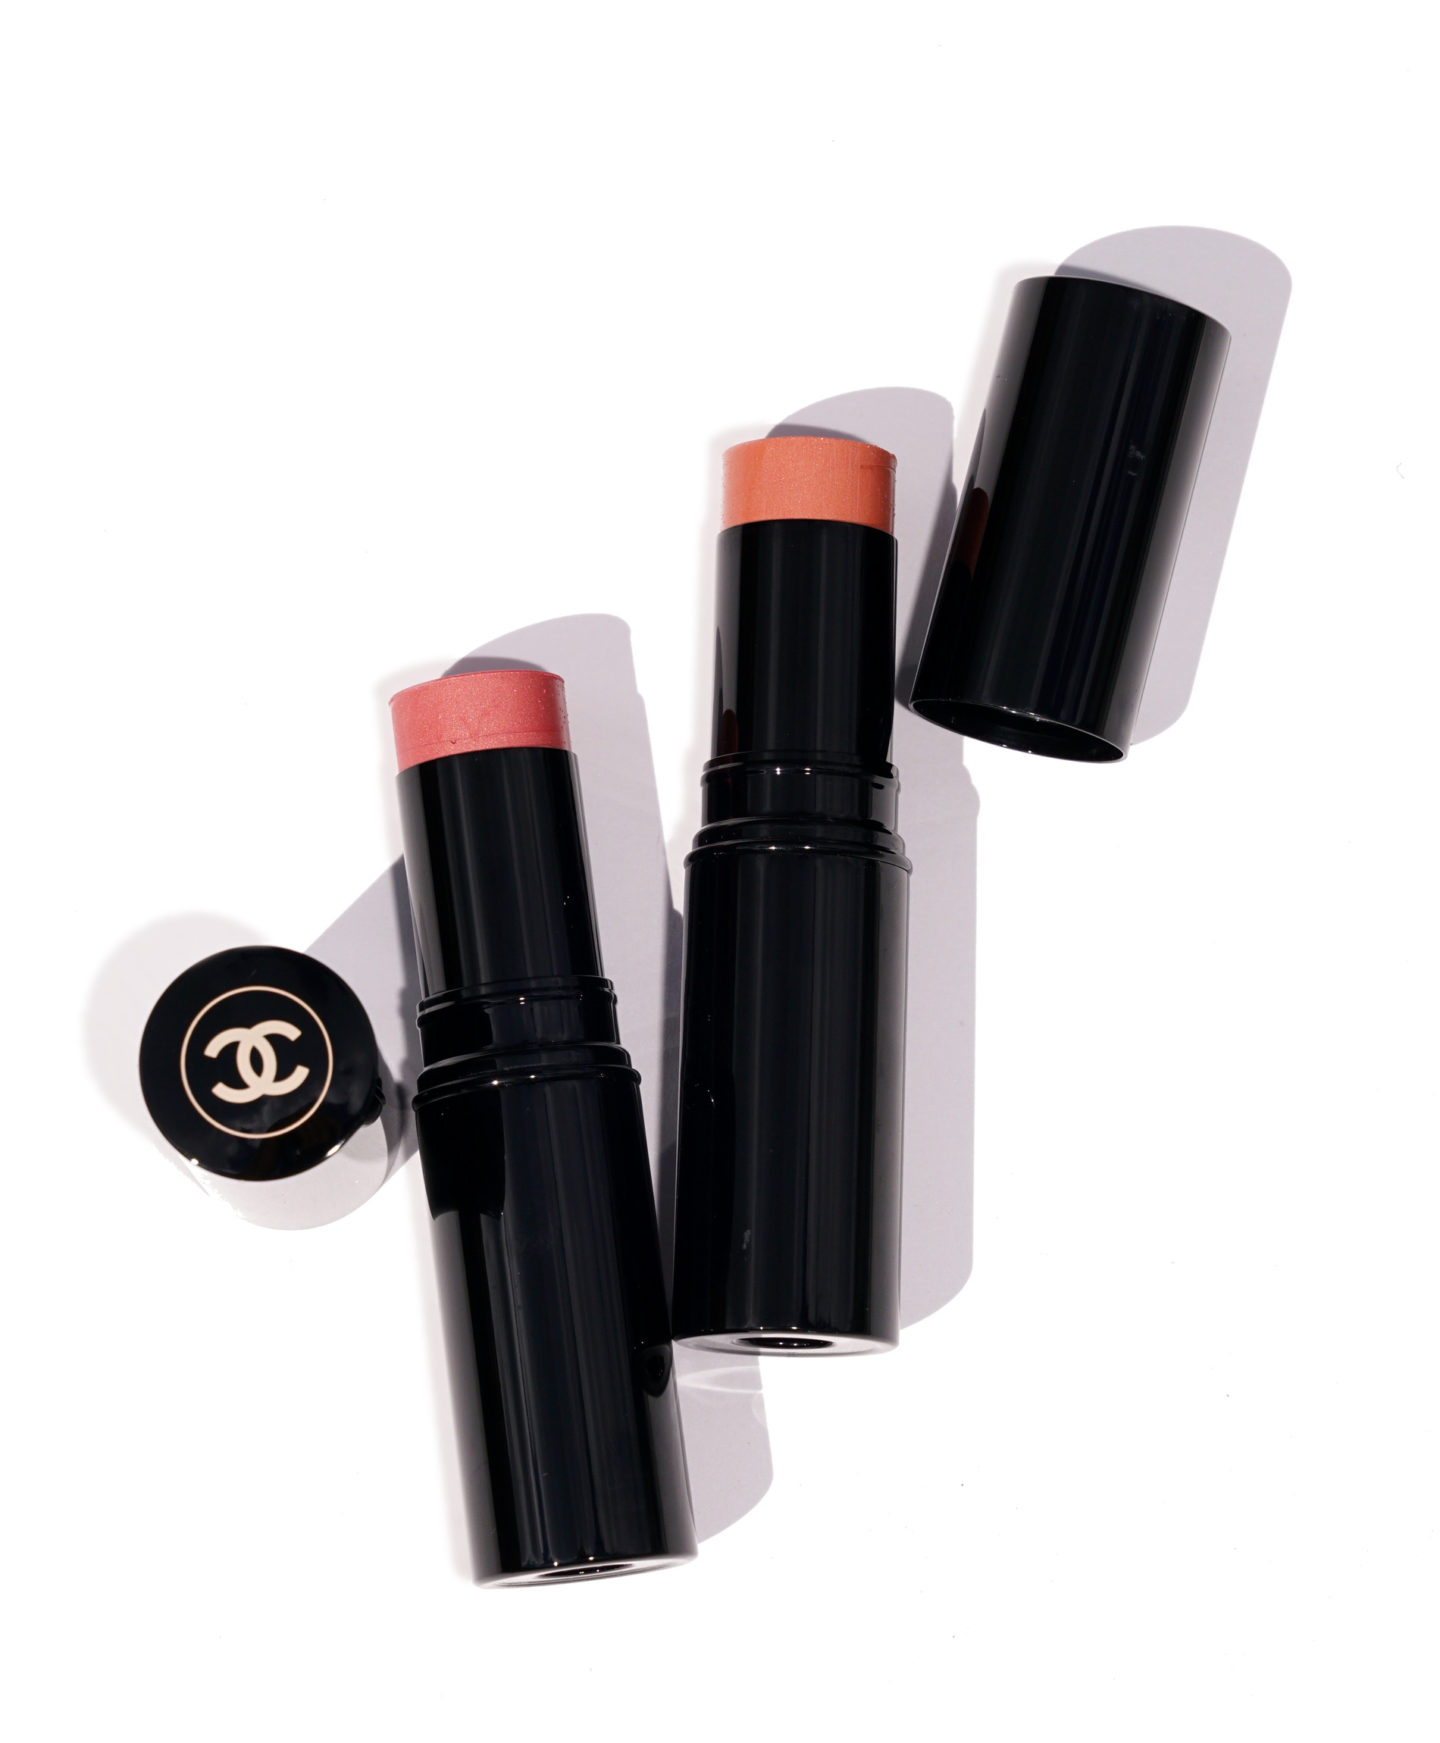 Chanel Les Beiges Healthy Glow Sheer Colour Stick Blush | The Beauty Look Book